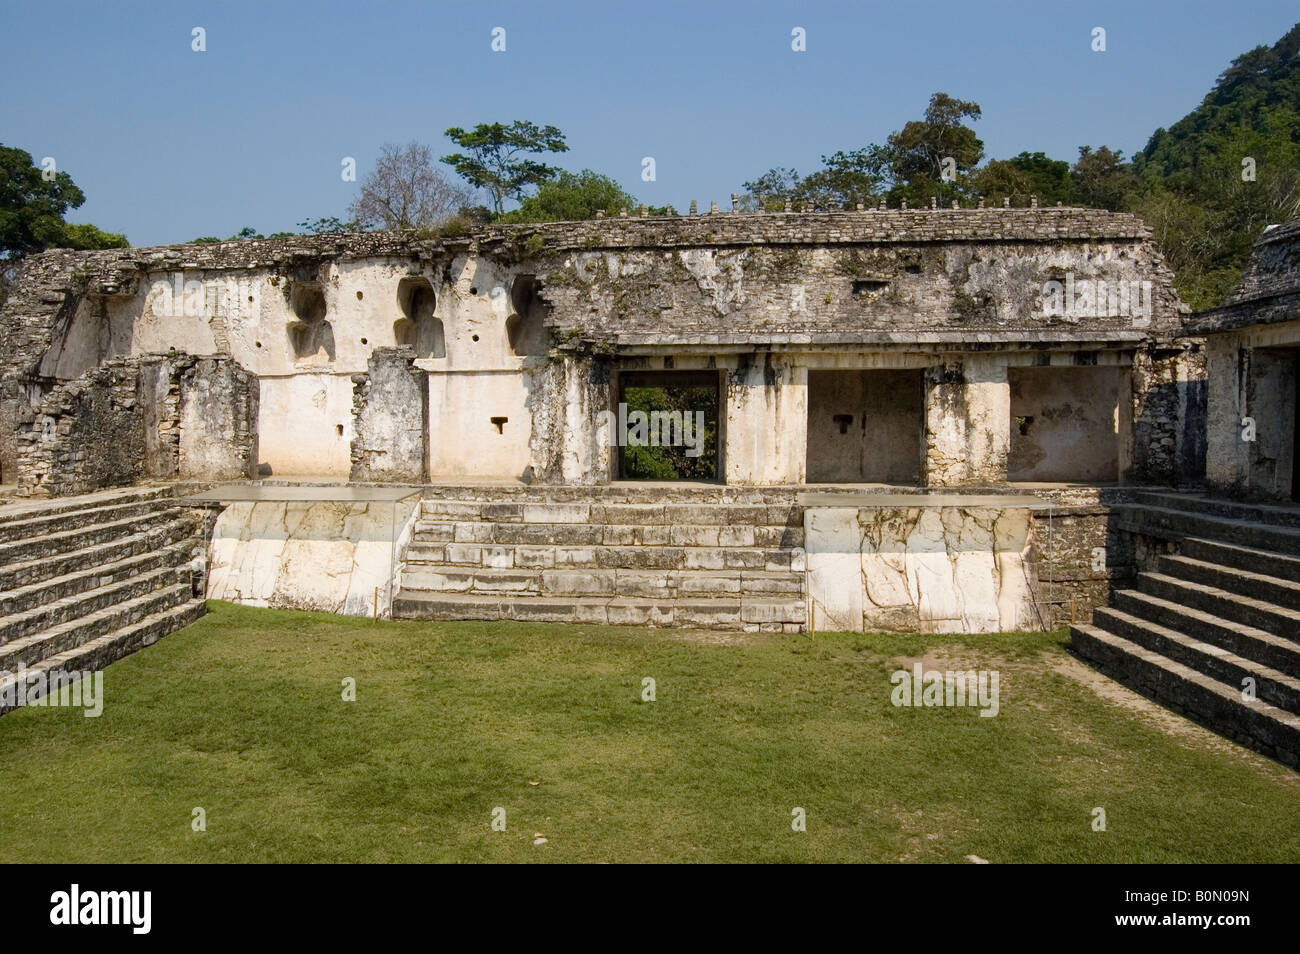 King Pakal castle detail showing the courtyard and main entrance at Palenque ruinsStock Photo